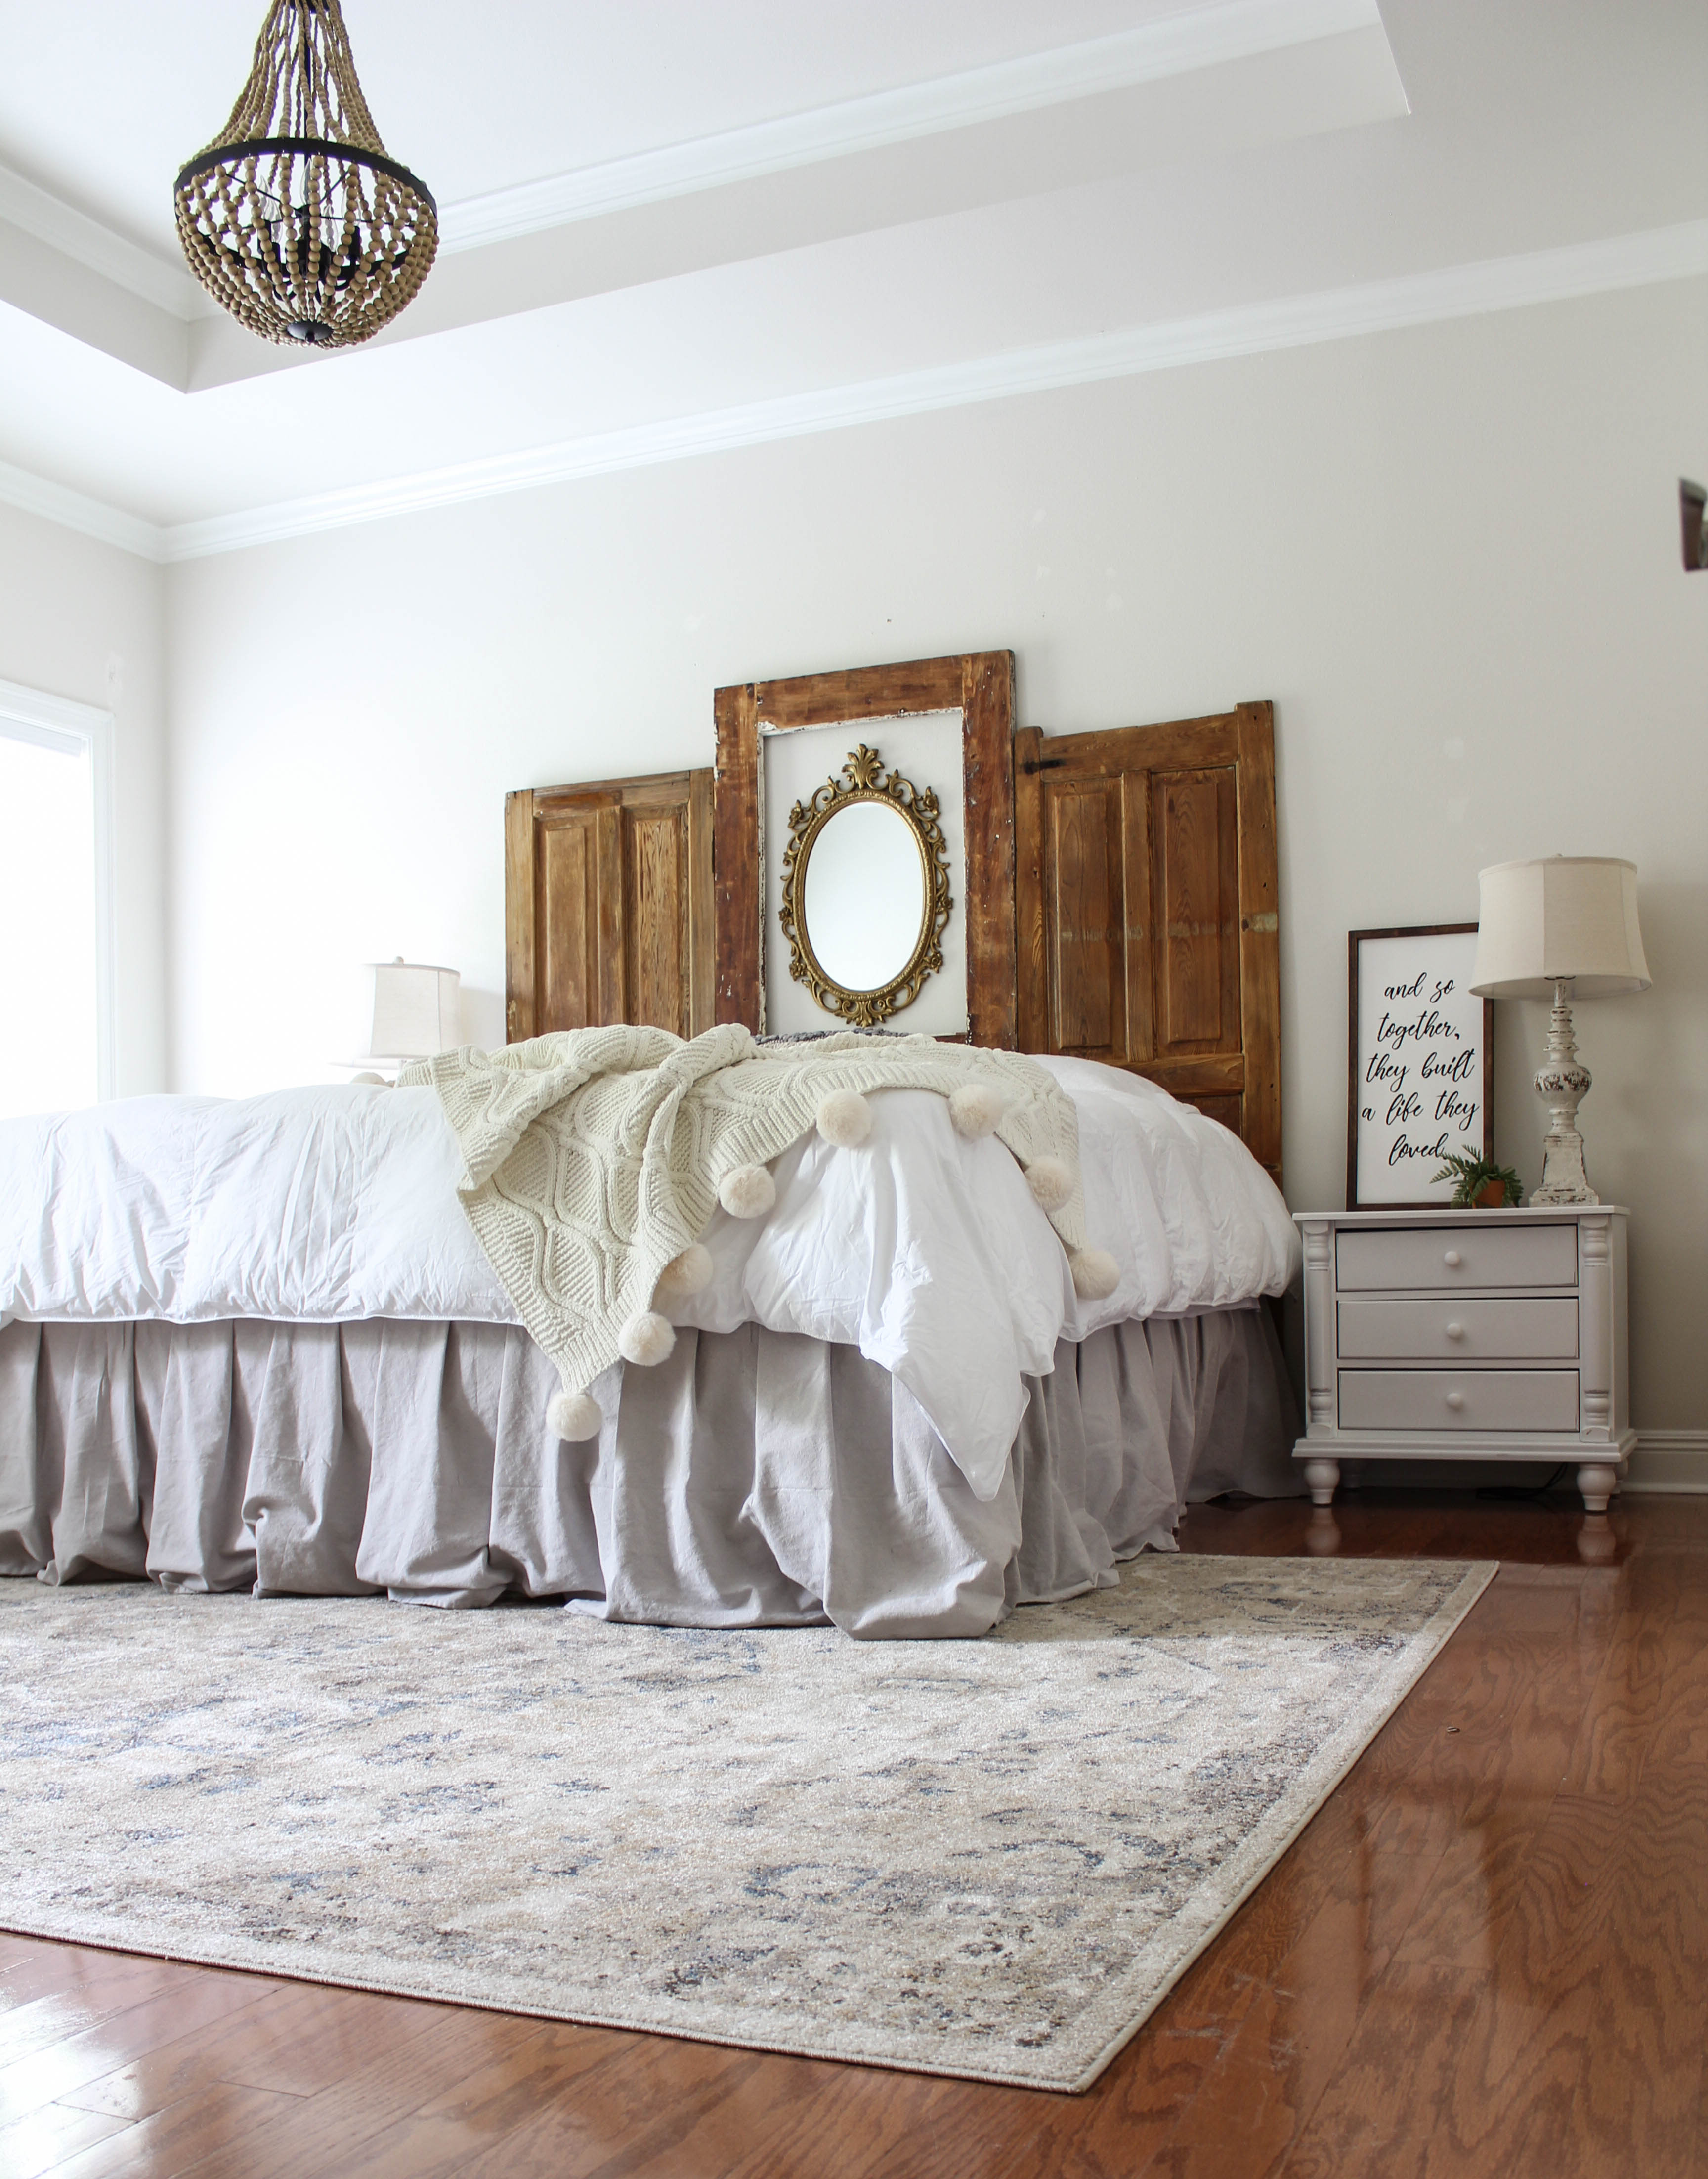 Diy Bed Skirt No Sew Dropcloth Beauty For Ashes